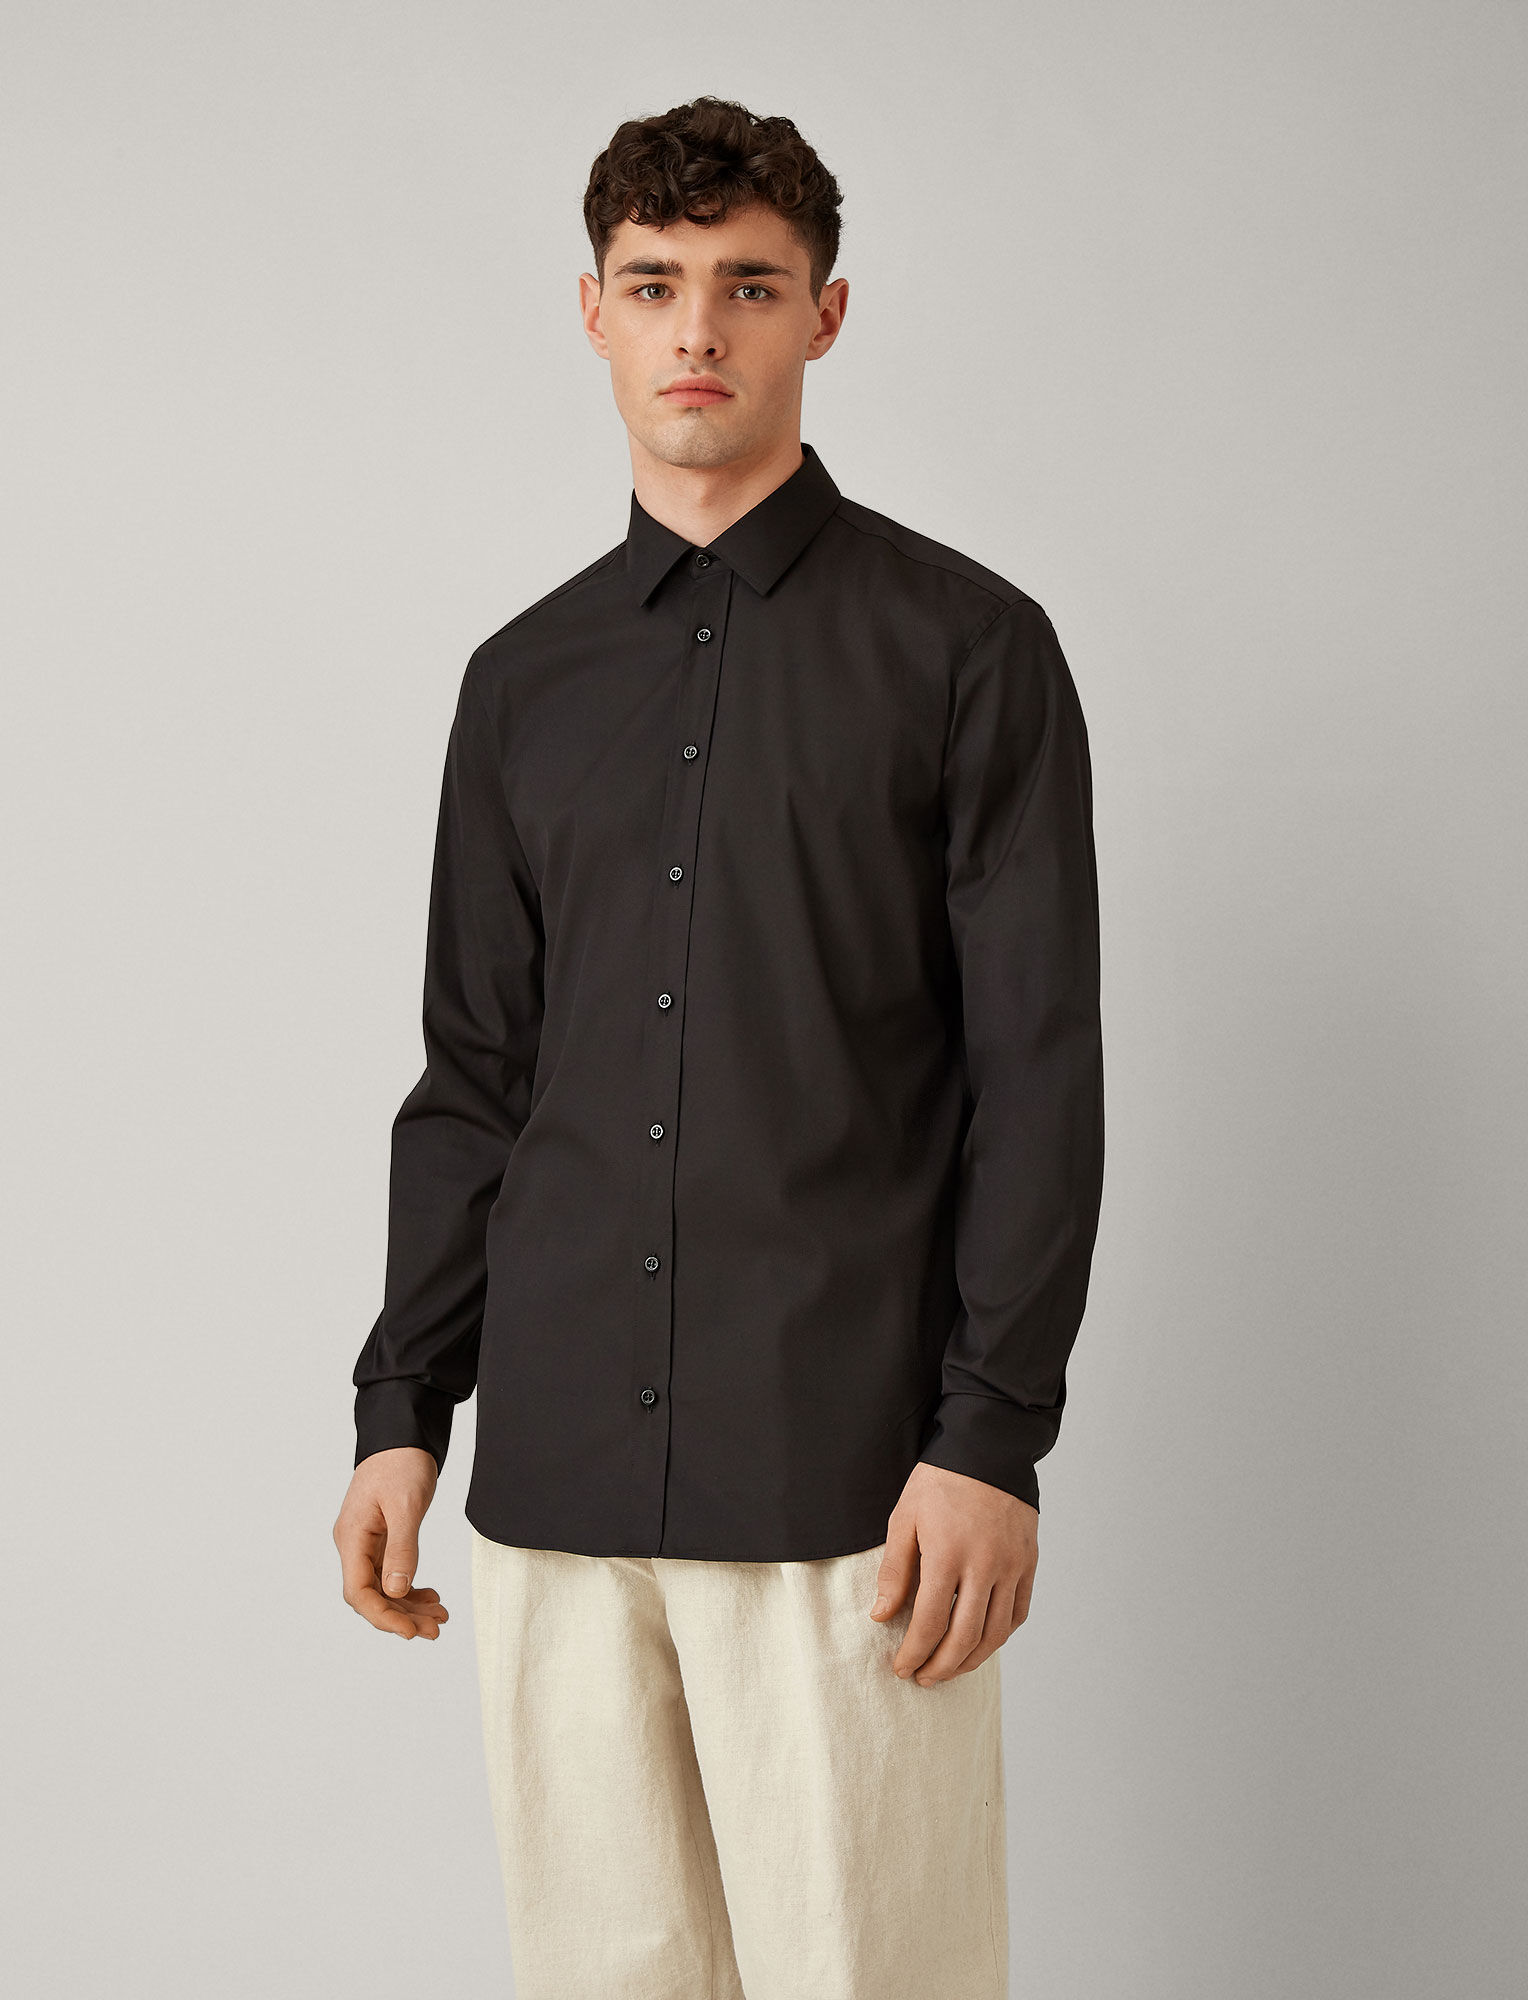 Joseph, Jim Poplin Stretch Shirt, in BLACK